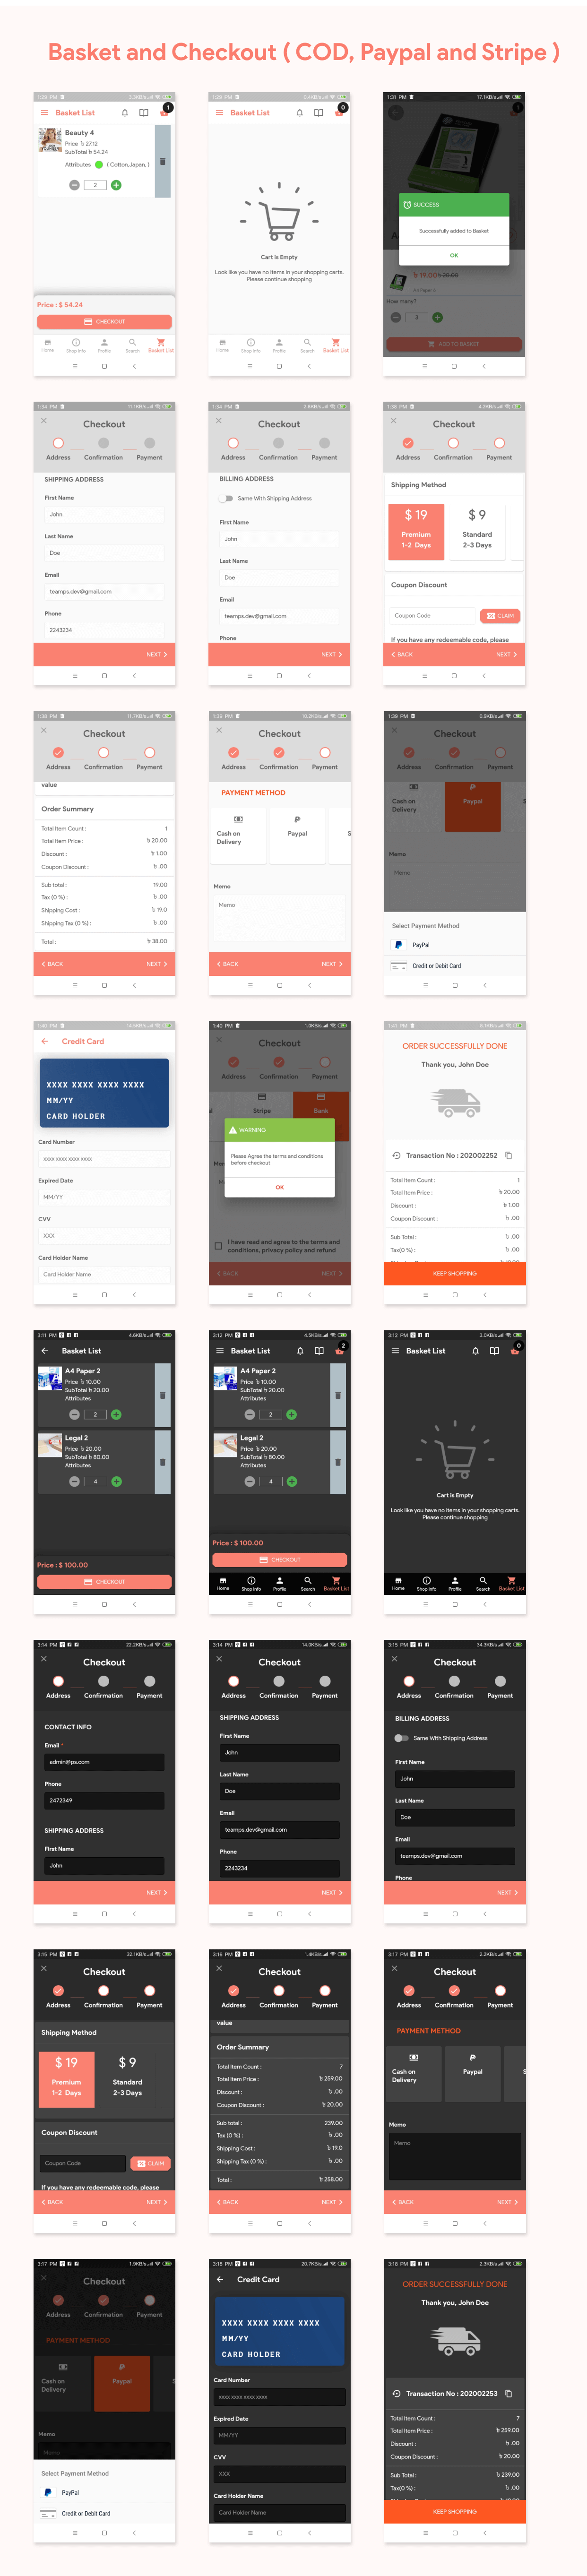 Flutter Store ( Ecommerce Mobile App for iOS & Android with same backend ) 1.7 - 11